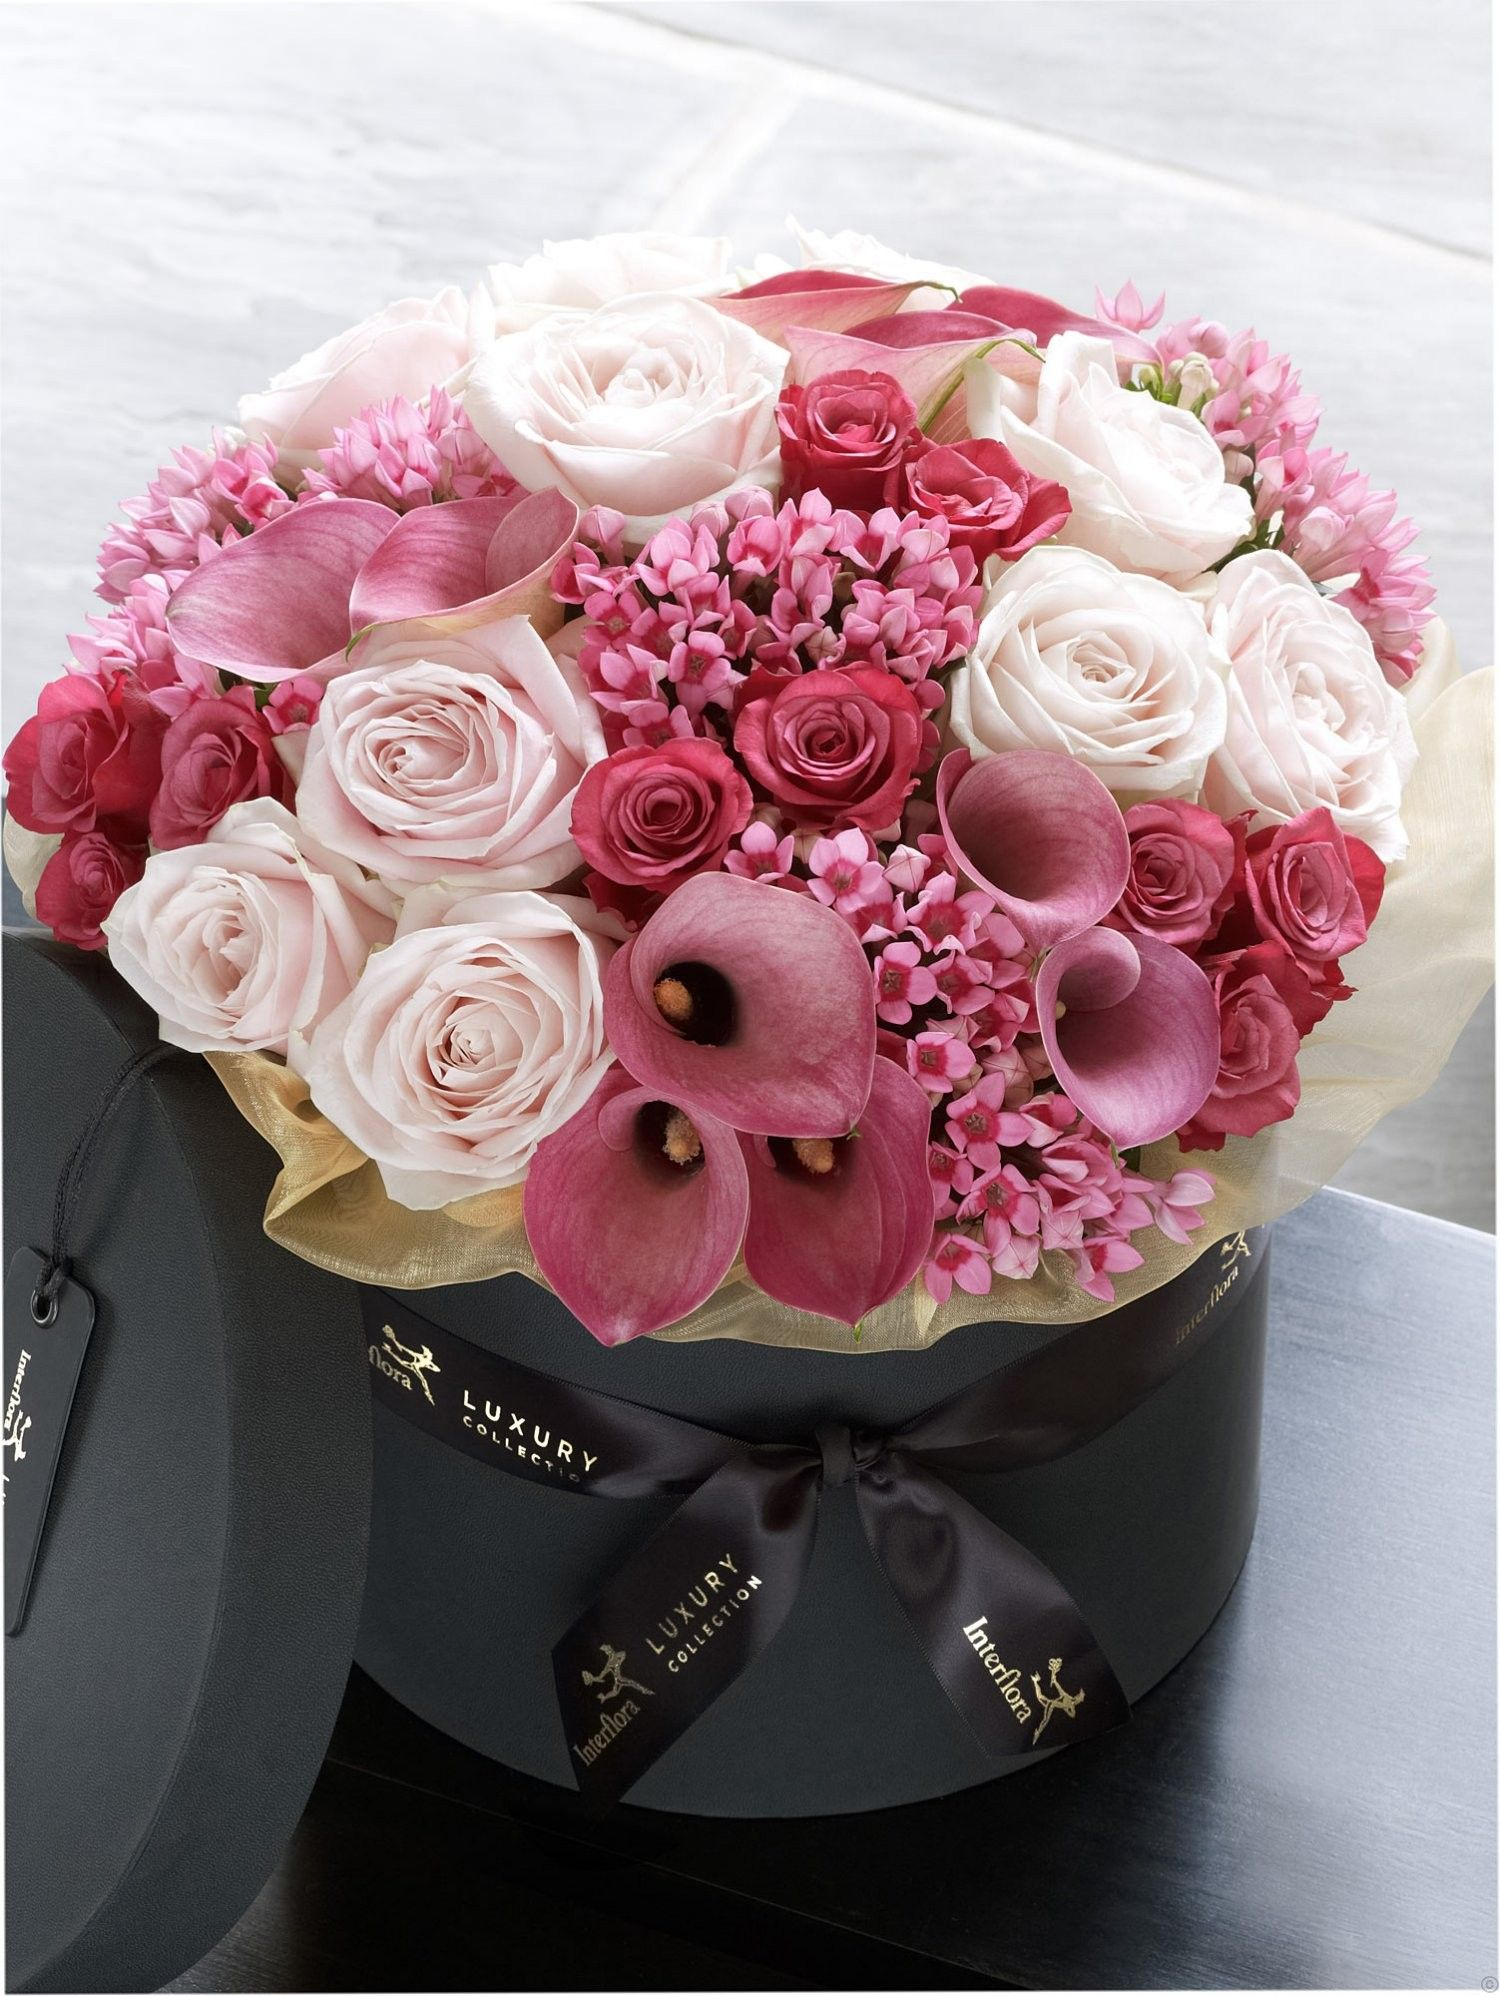 Luxury Rose and Calla Lily Hatbox Purple / Lilac Flowers